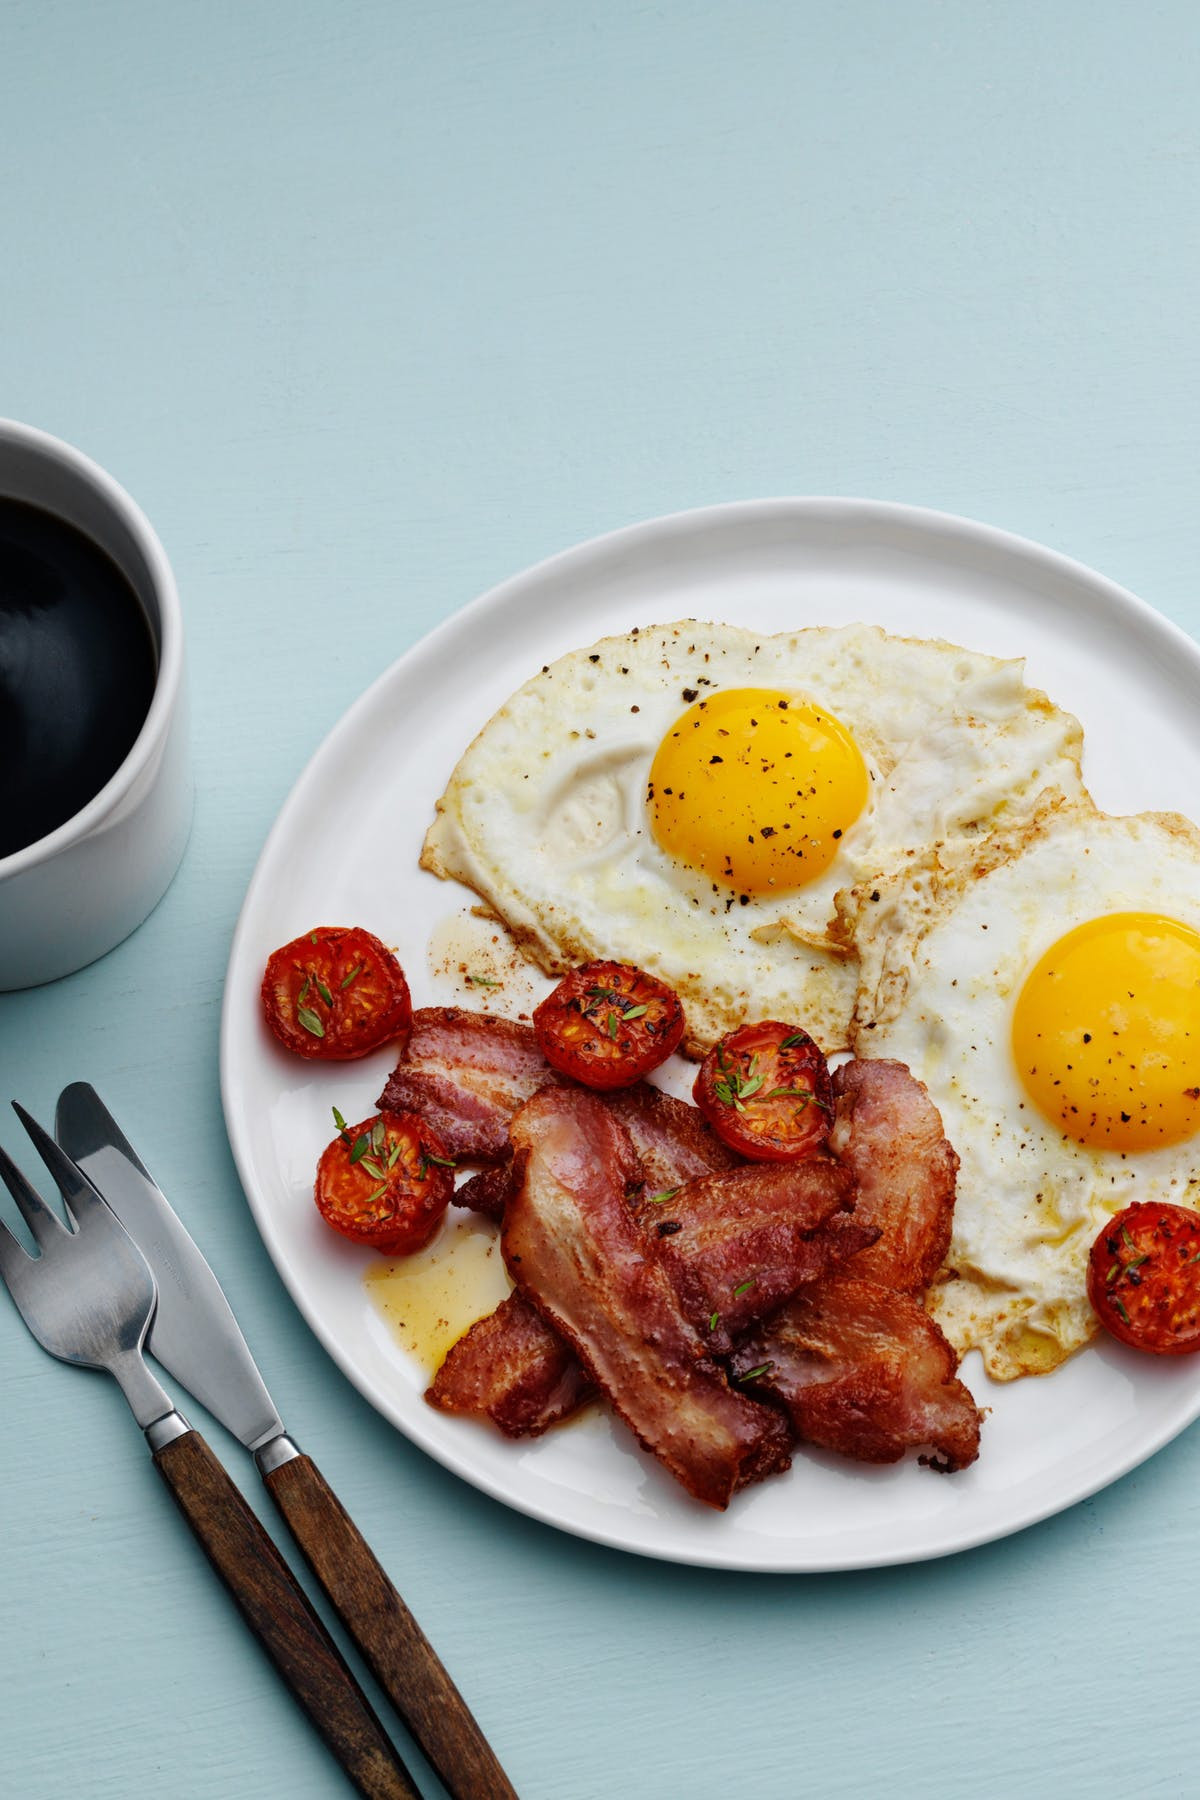 Breakfast Ideas With Eggs And Bacon  Classic Bacon and Eggs a Keto Breakfast Favorite Diet